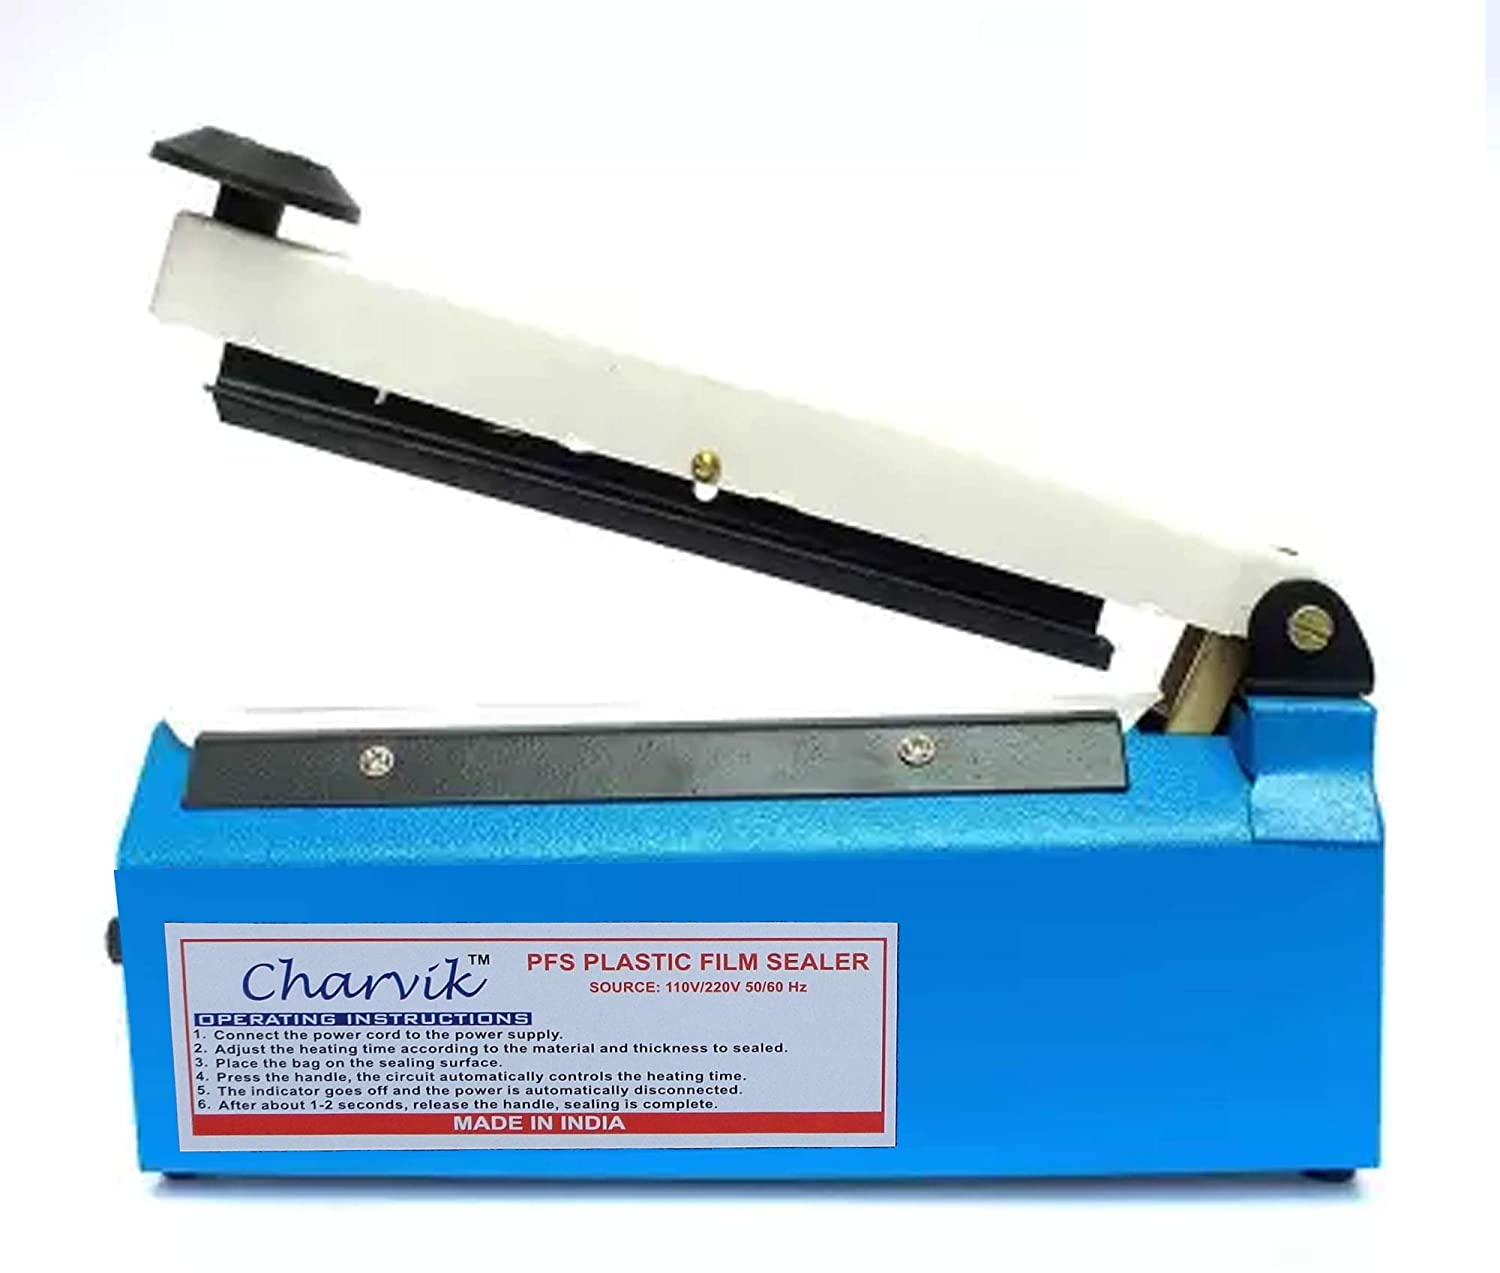 Charvik Sealing Machine for Use Plastic Polythene Bag Seal, 8 Inch, Multicolour